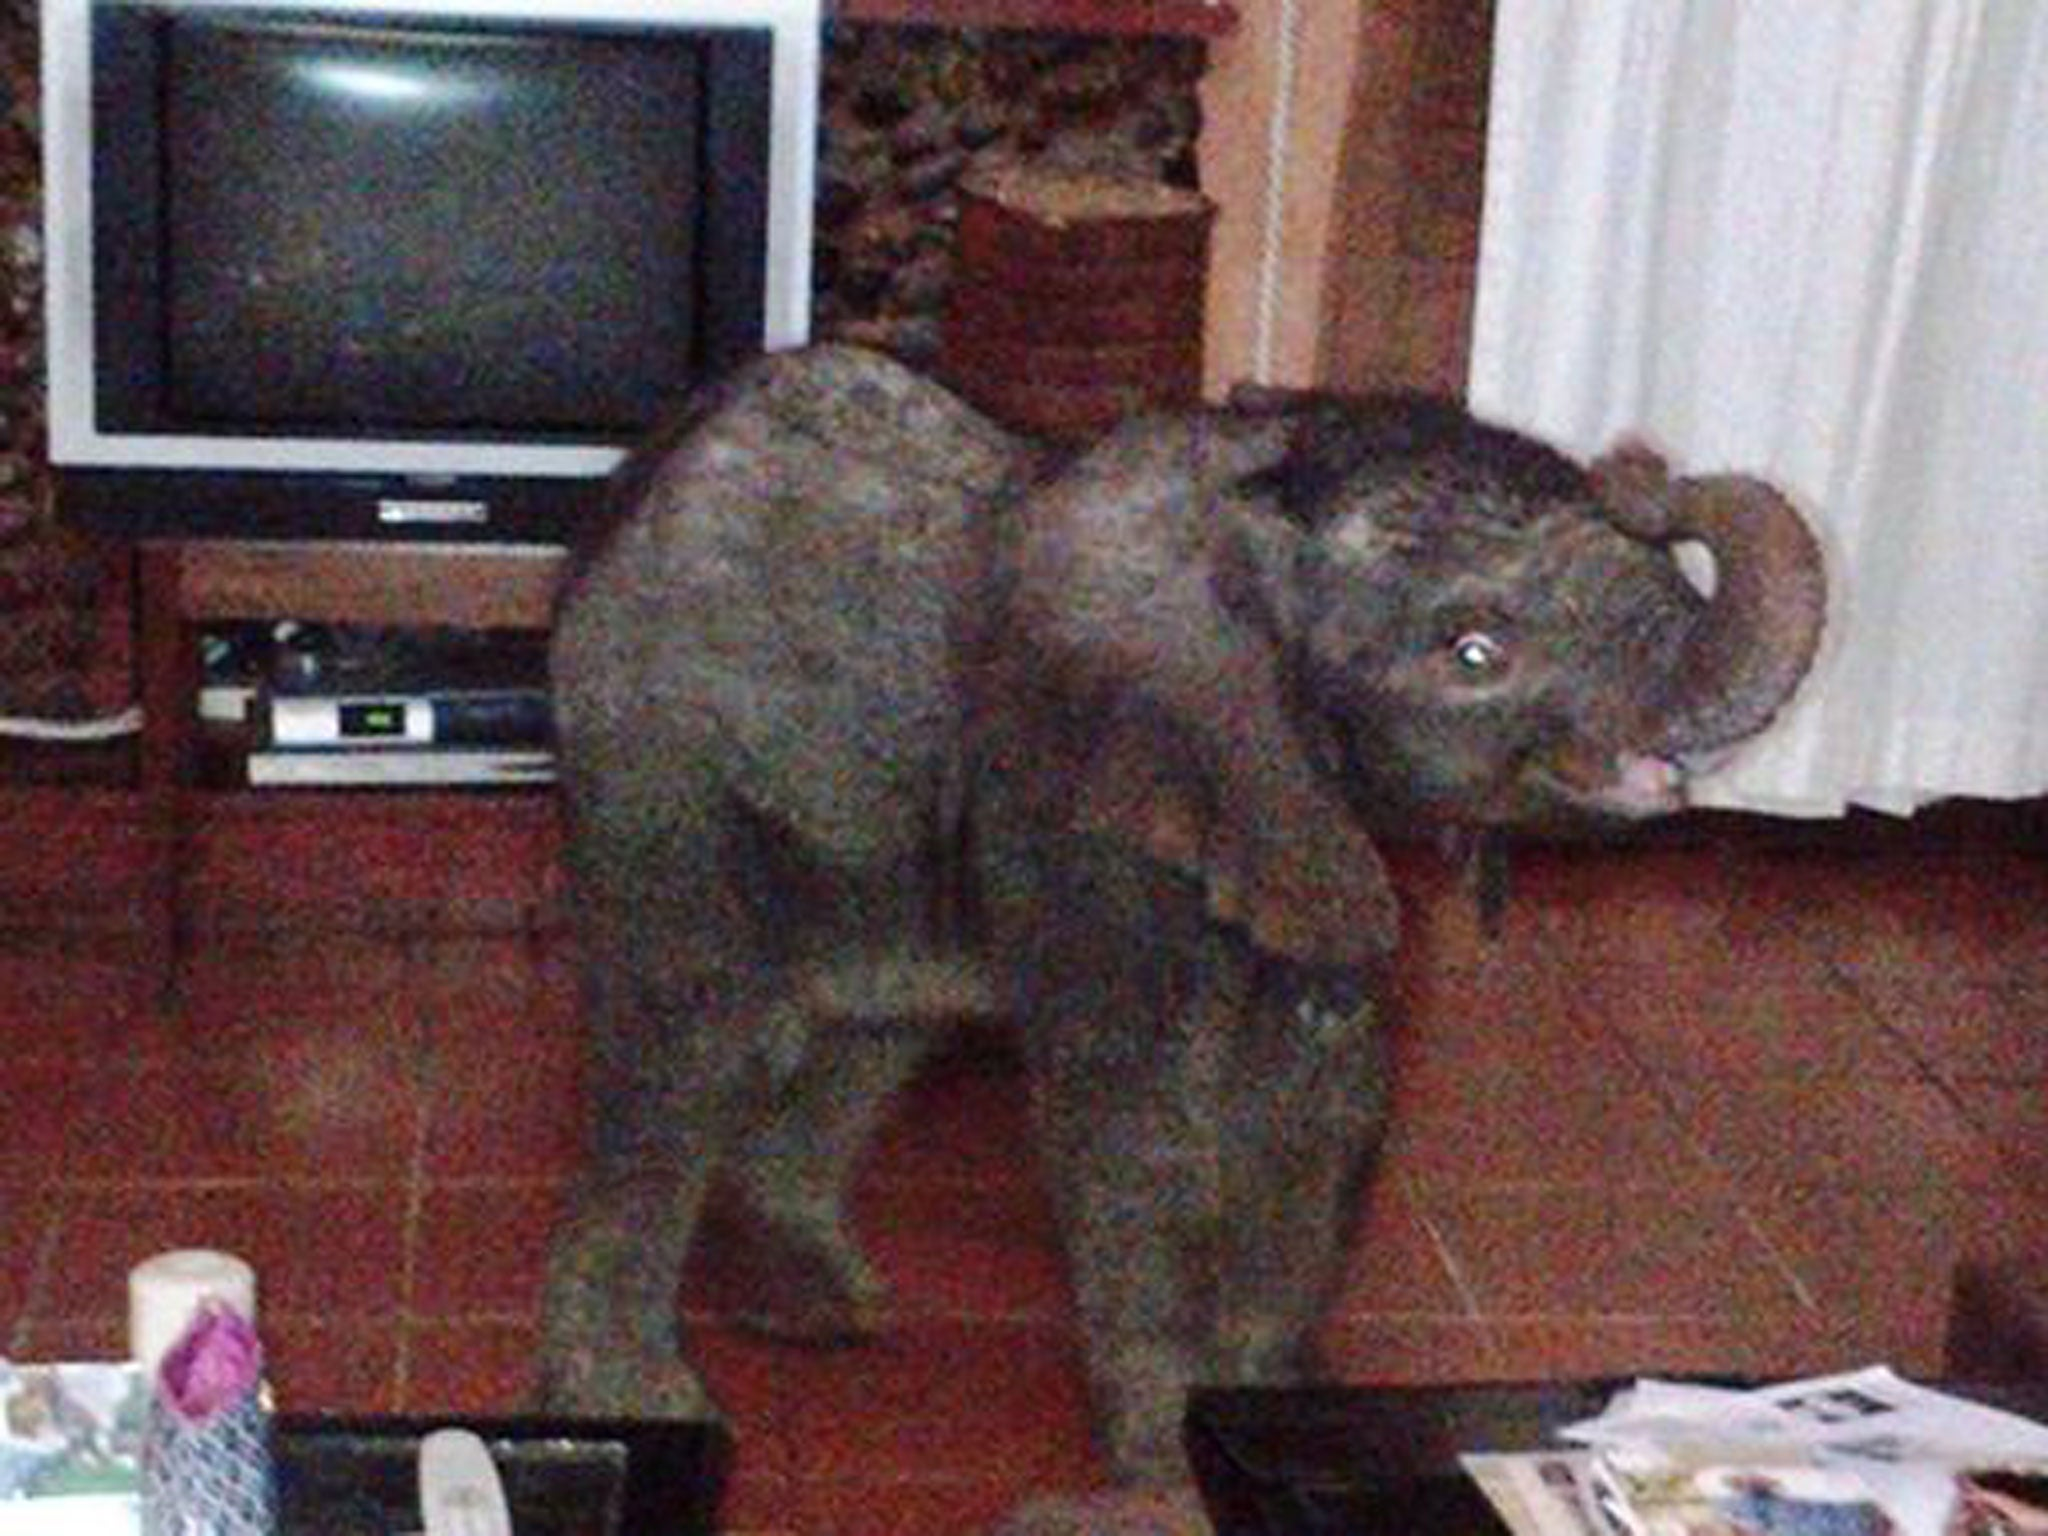 Lost baby elephant tom wanders into living room after - The elephant in the living room full movie ...